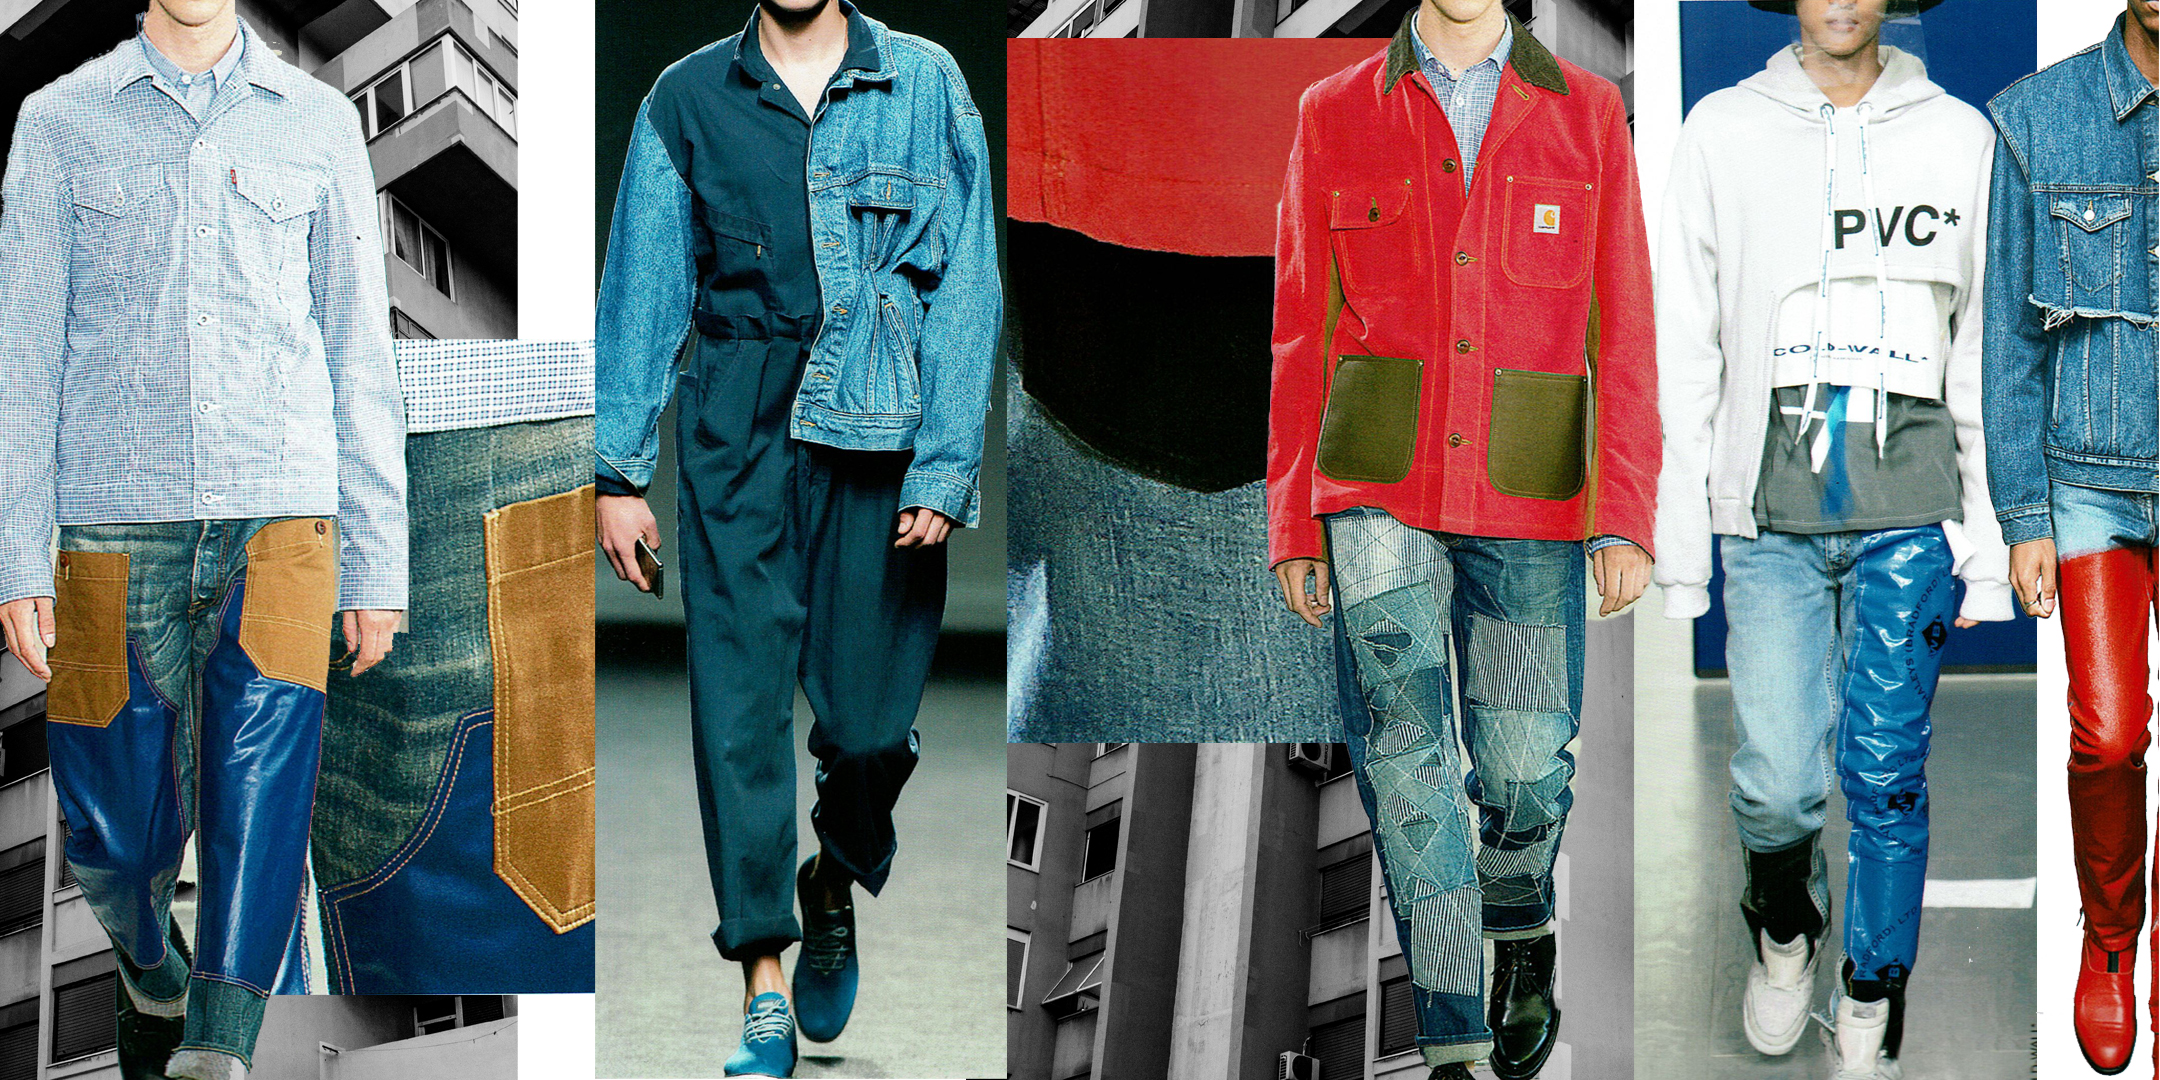 Designers (from left to right): Junya Watanabe Man, Lye Lysianne, Junya Watanabe Man A Cold Wall, John Lawrence Sullivan